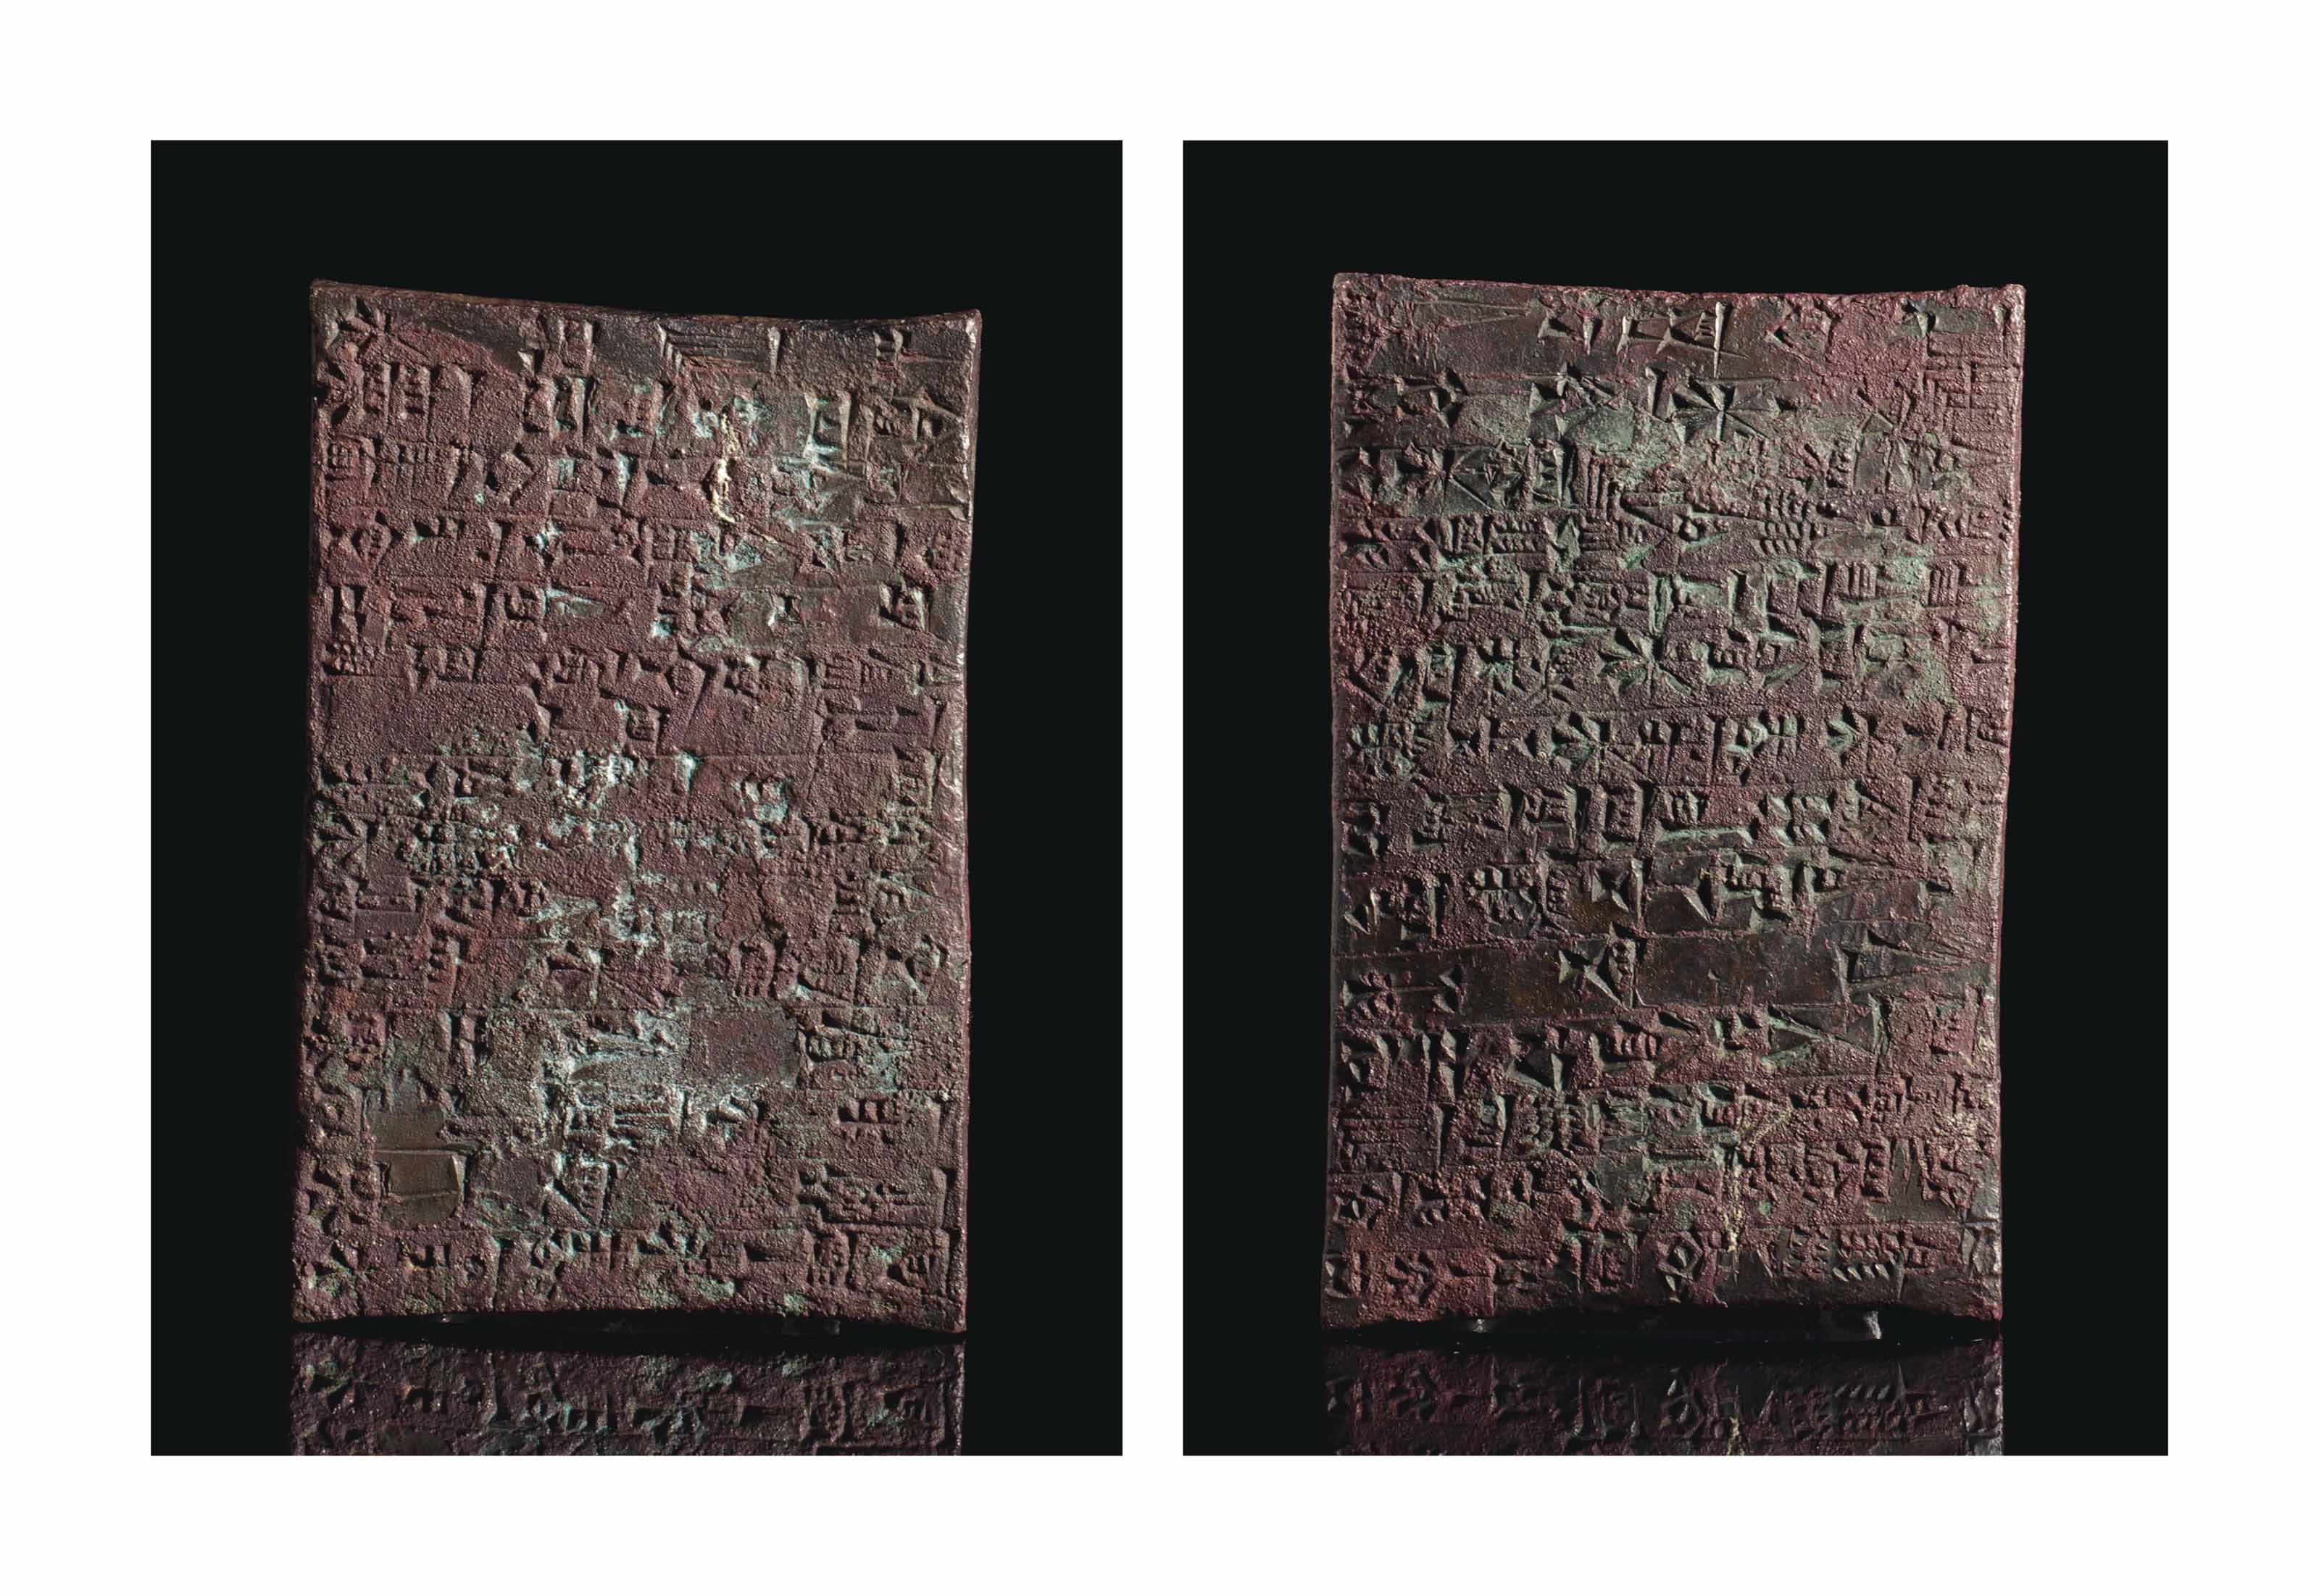 A MESOPOTAMIAN COPPER CUNEIFORM TABLET